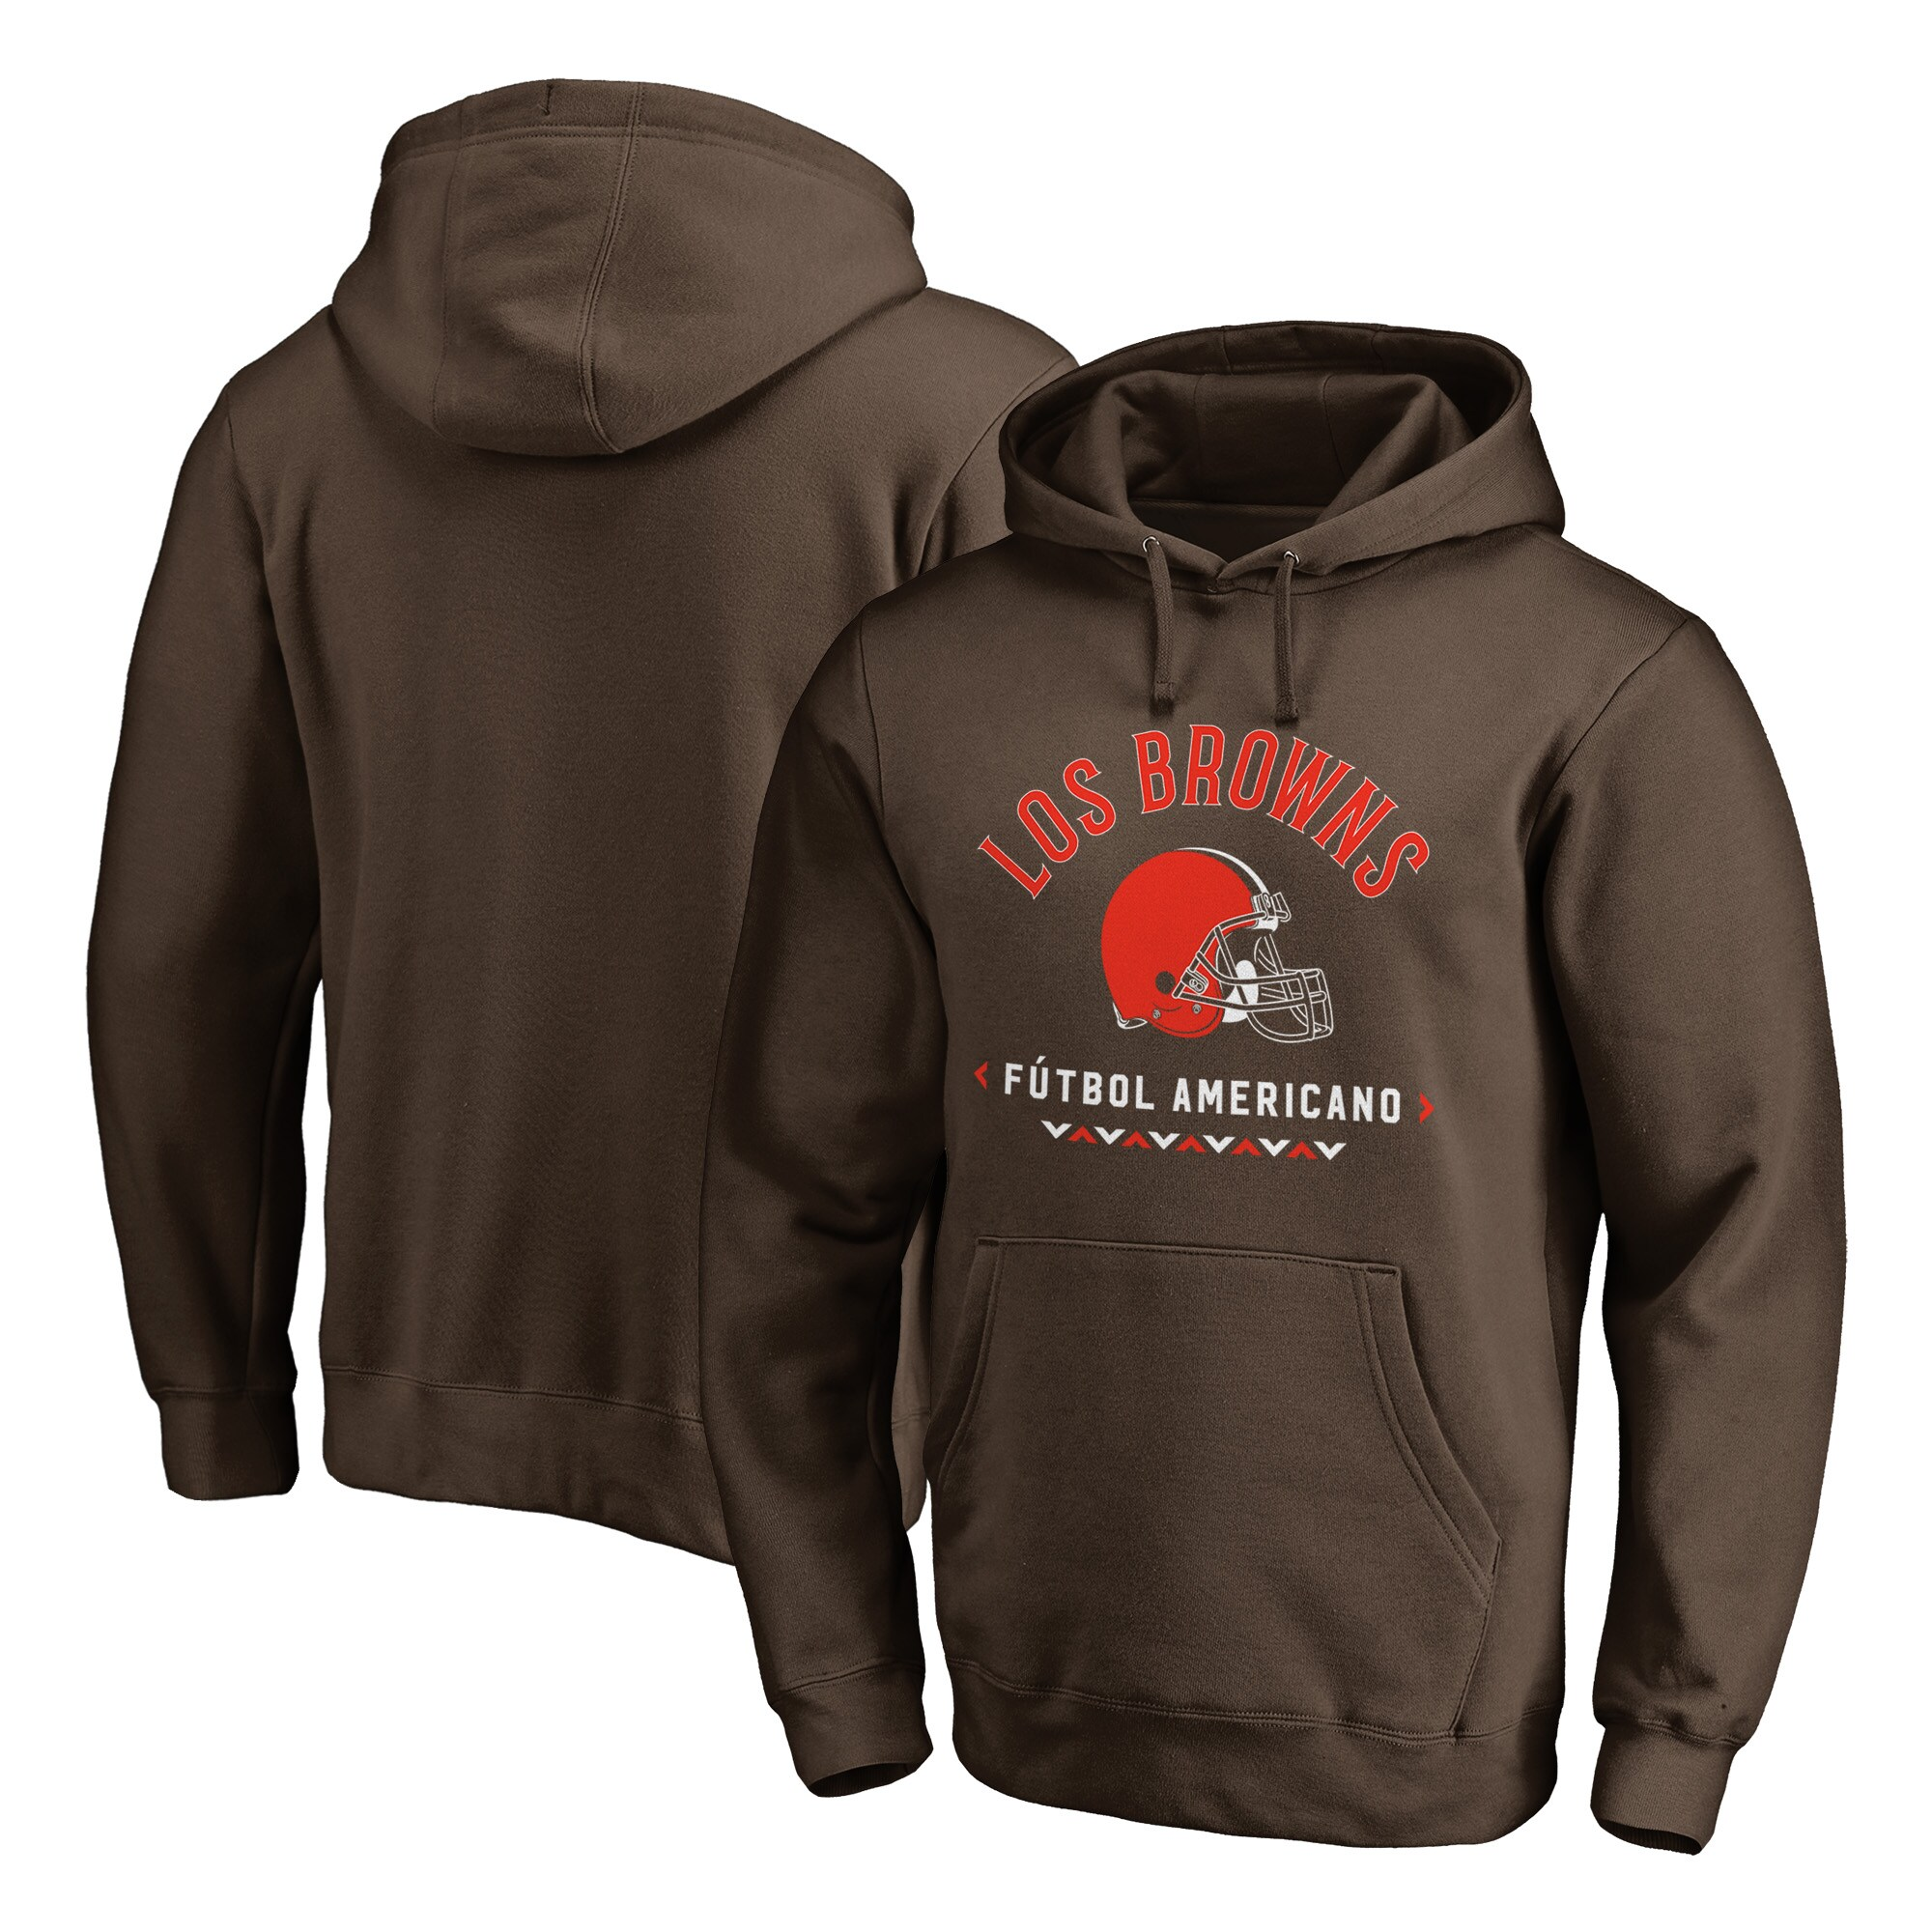 Cleveland Browns NFL Pro Line by Fanatics Branded Futbol Americano Pullover Hoodie - Brown